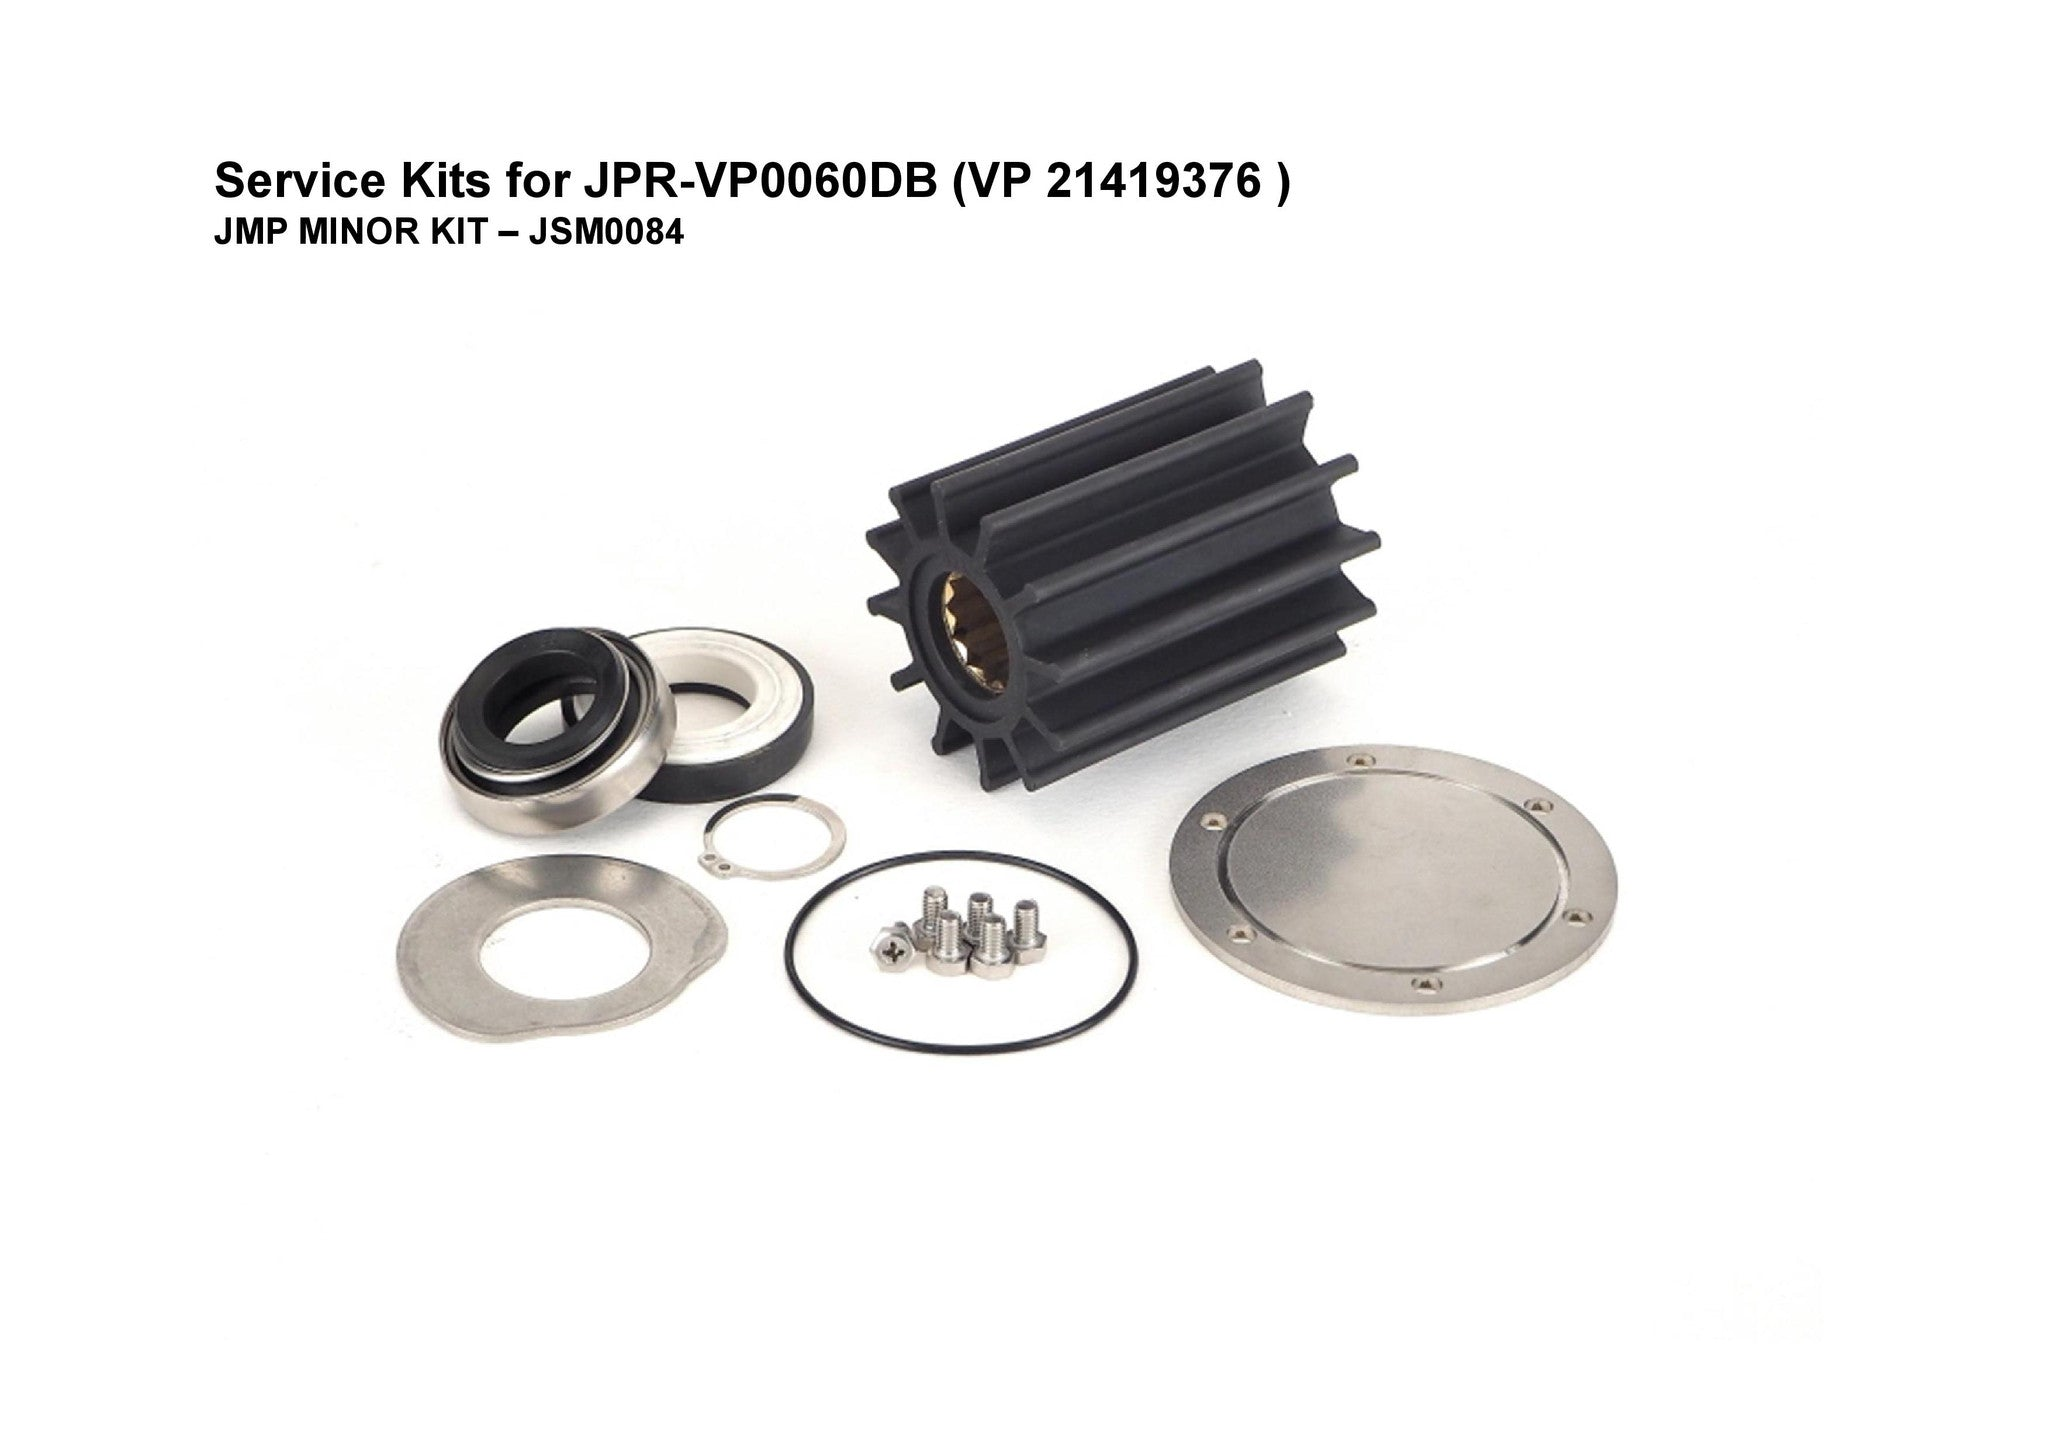 Service Kit for Volvo Penta D6 Engine Seawater Pump -21419376